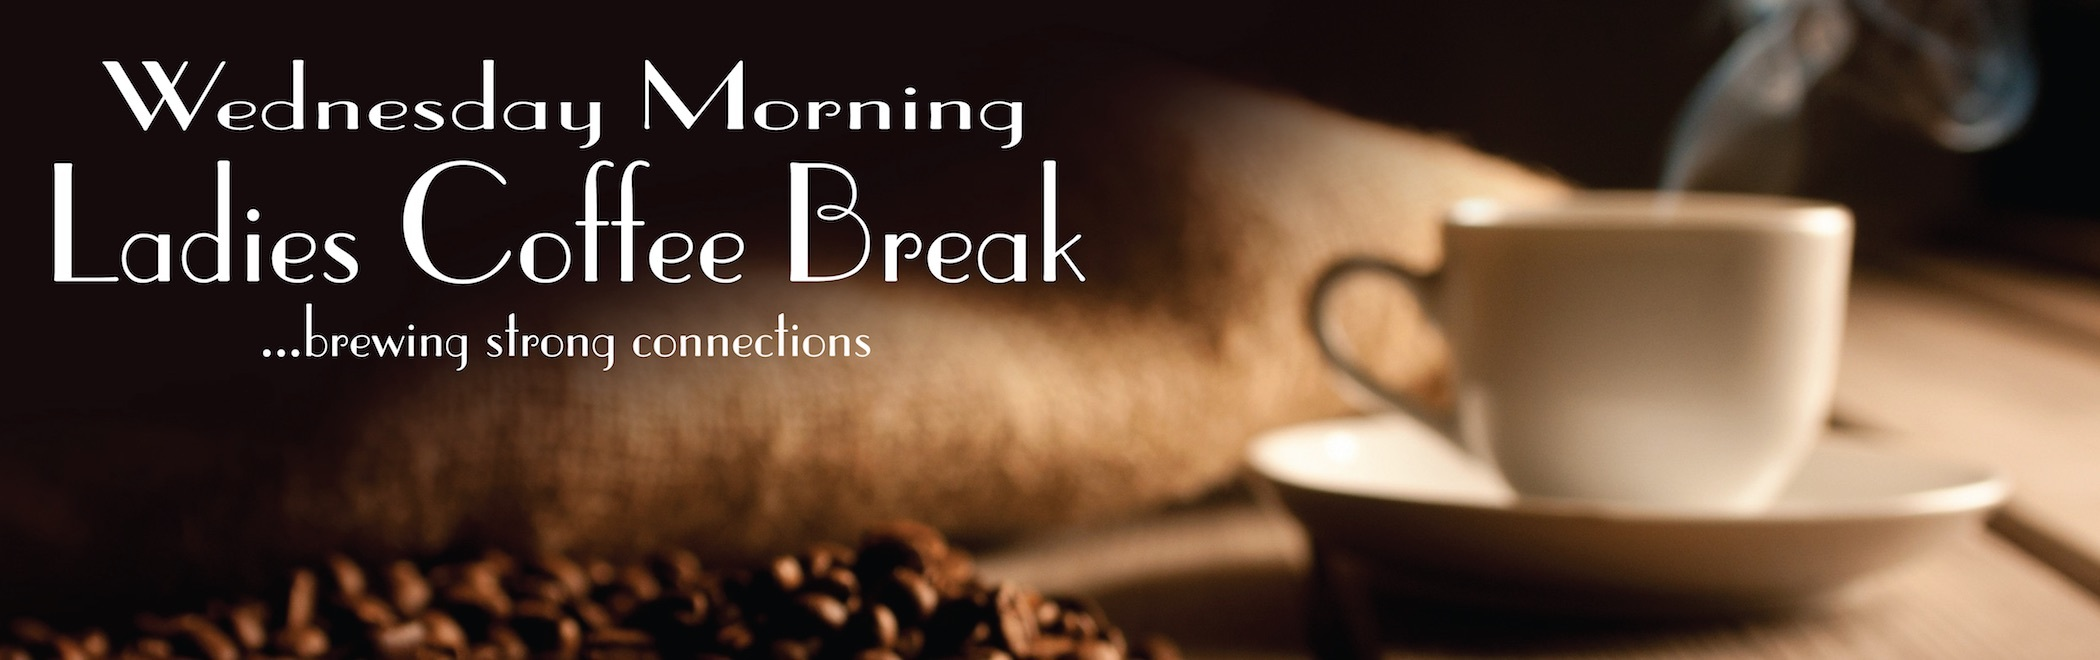 Coffee break website banner